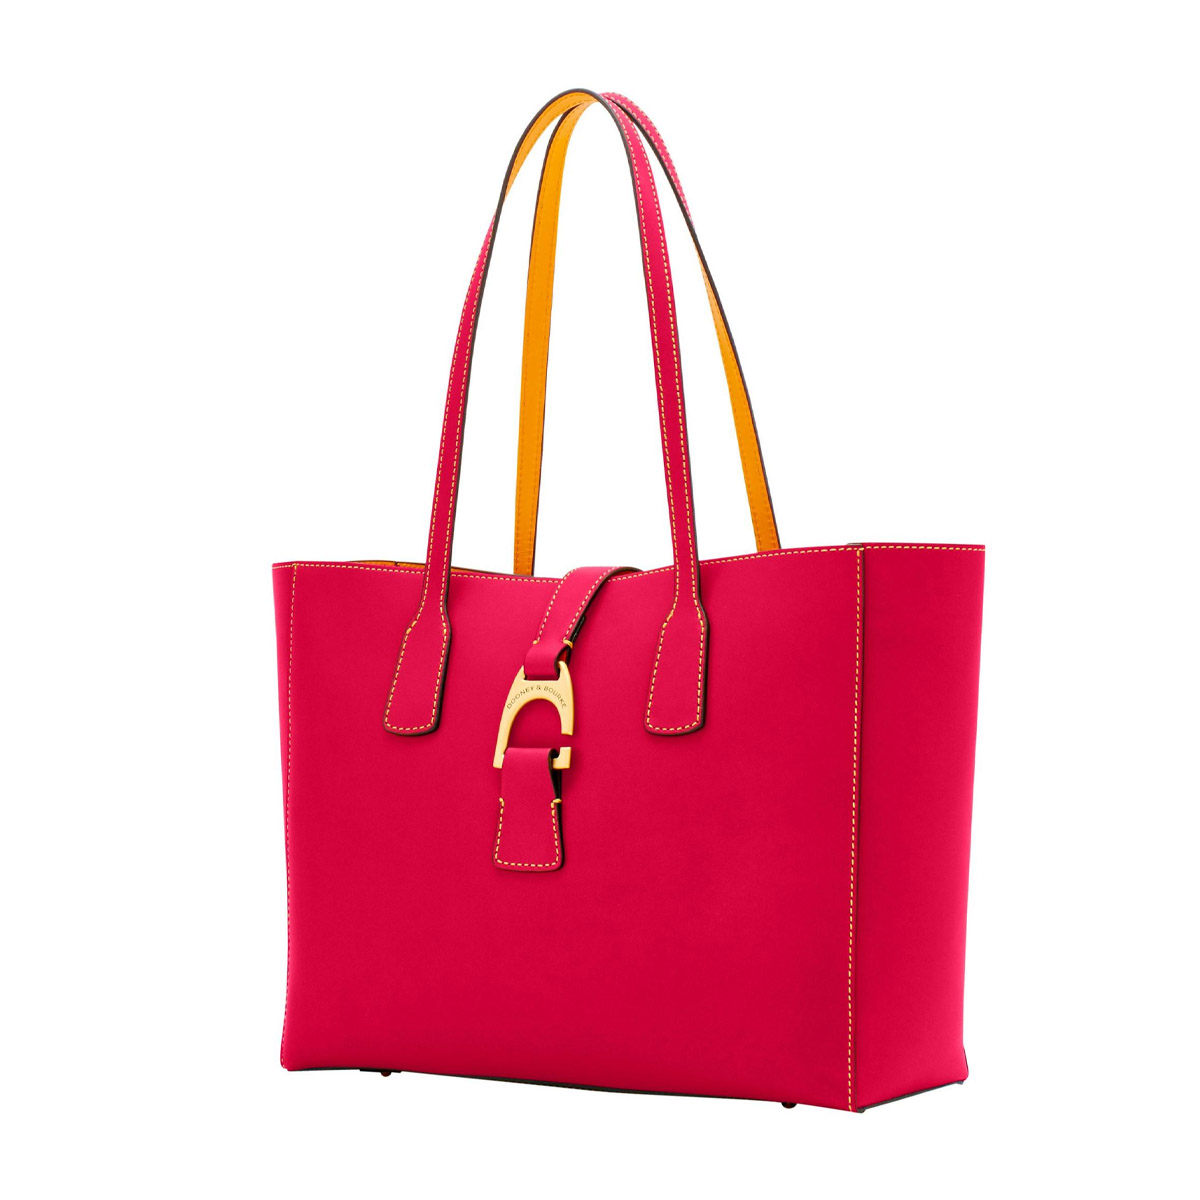 Dooney & Bourke Shannon Tote - Crafted from waxed French Leather and featuring Italian hardware, this durable tote will last a lifetime. Generously contributed by Dooney & Bourke.Retail Value: $328.00